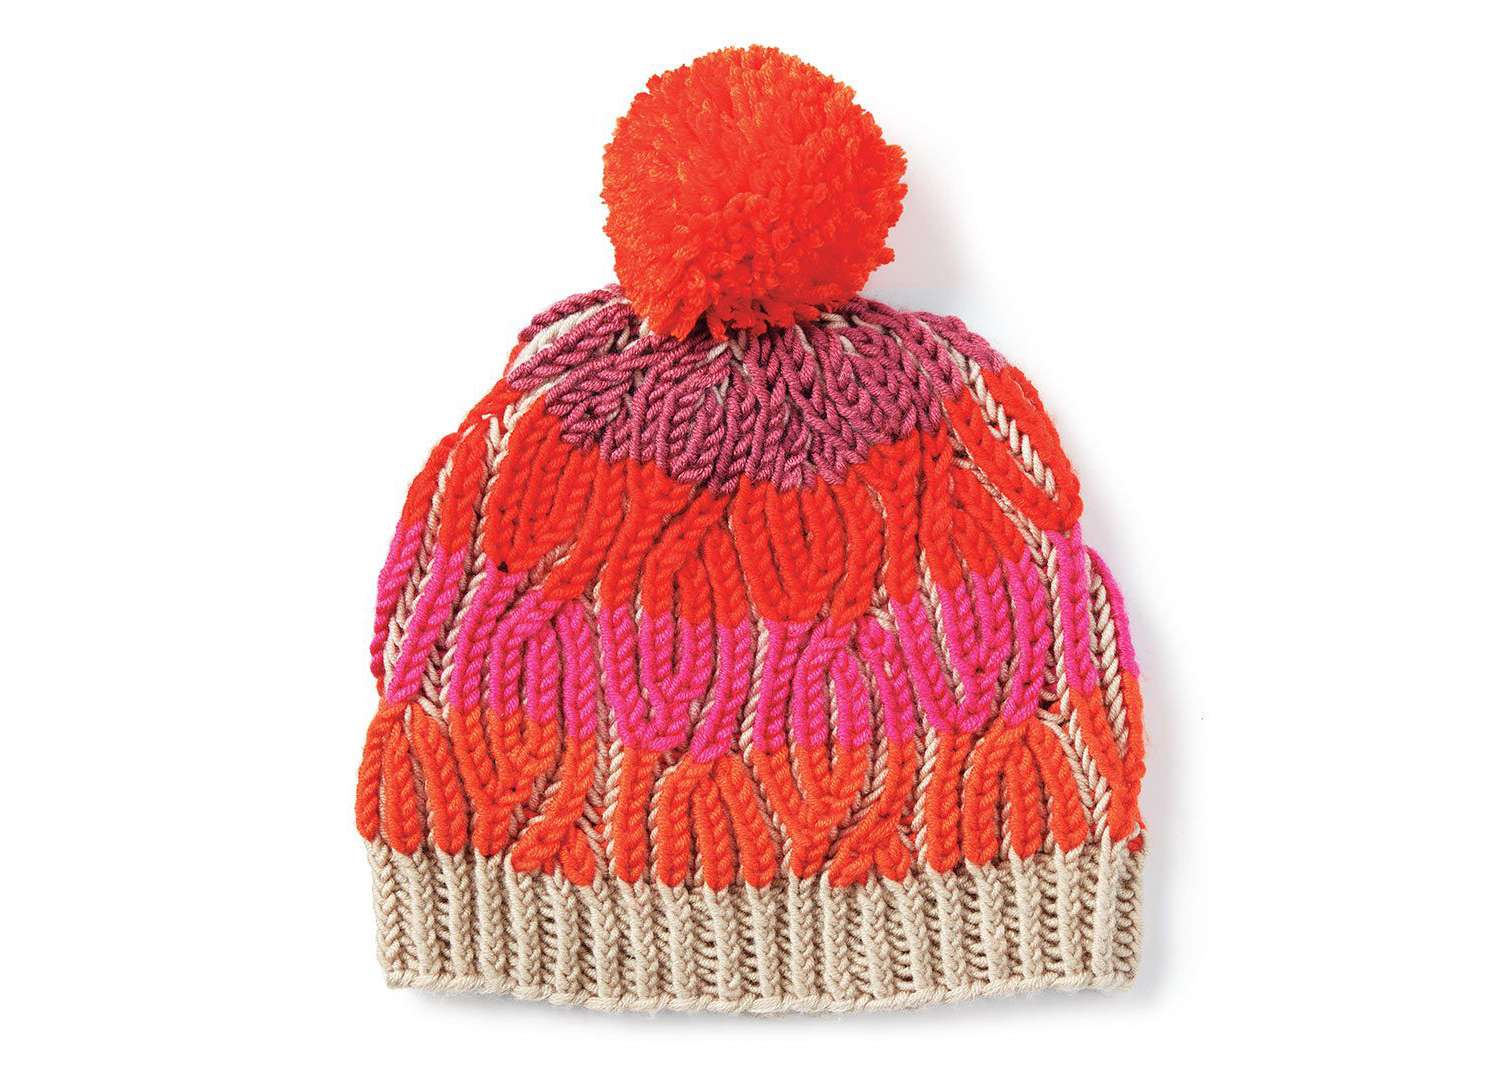 Brioche Cables Hat Knitting Pattern